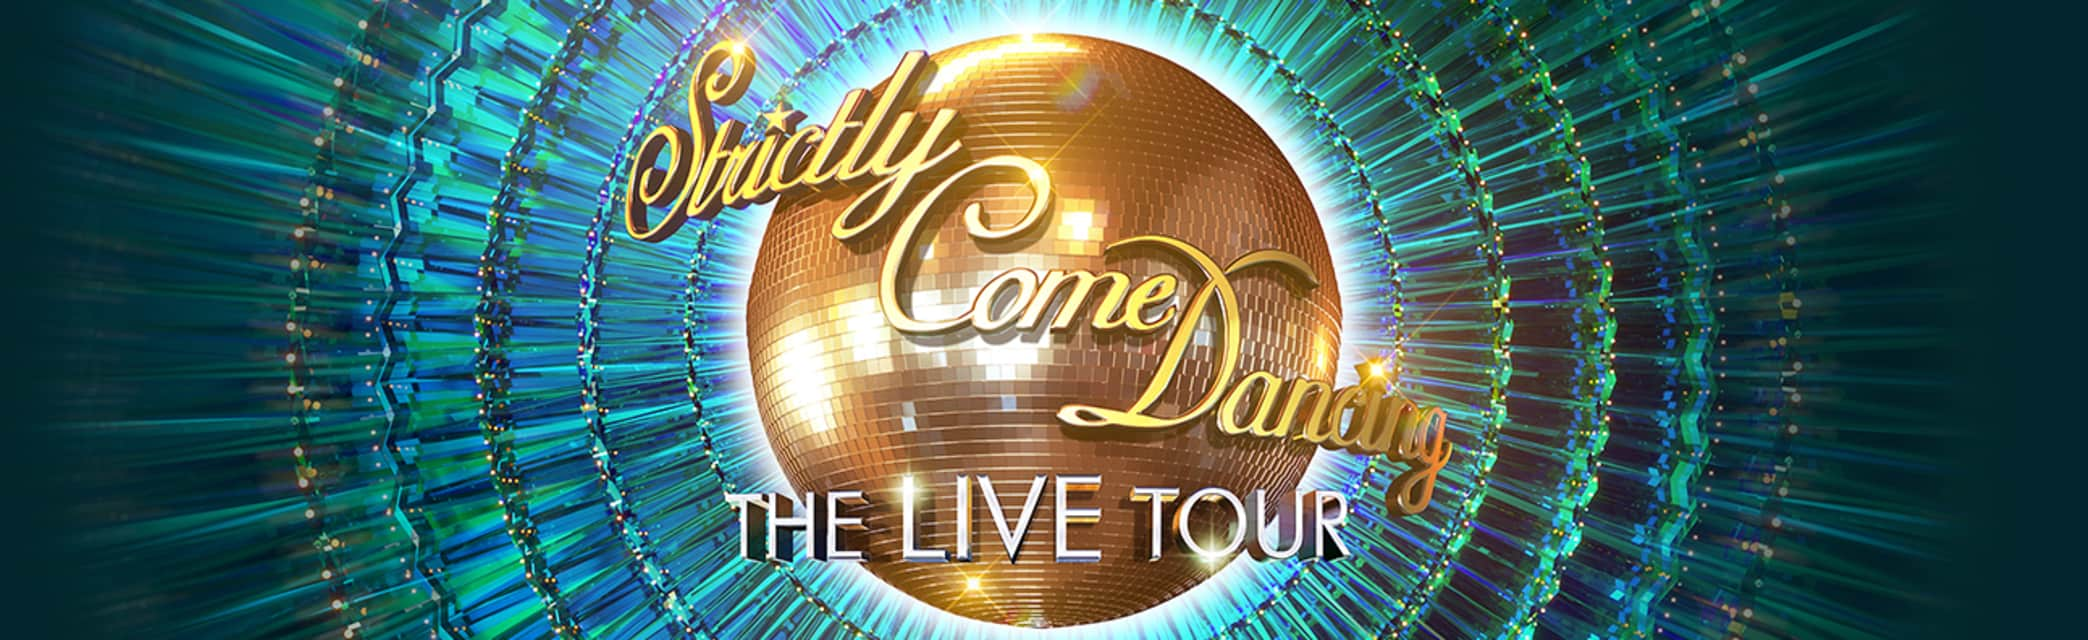 Strictly Come Dancing - British television show